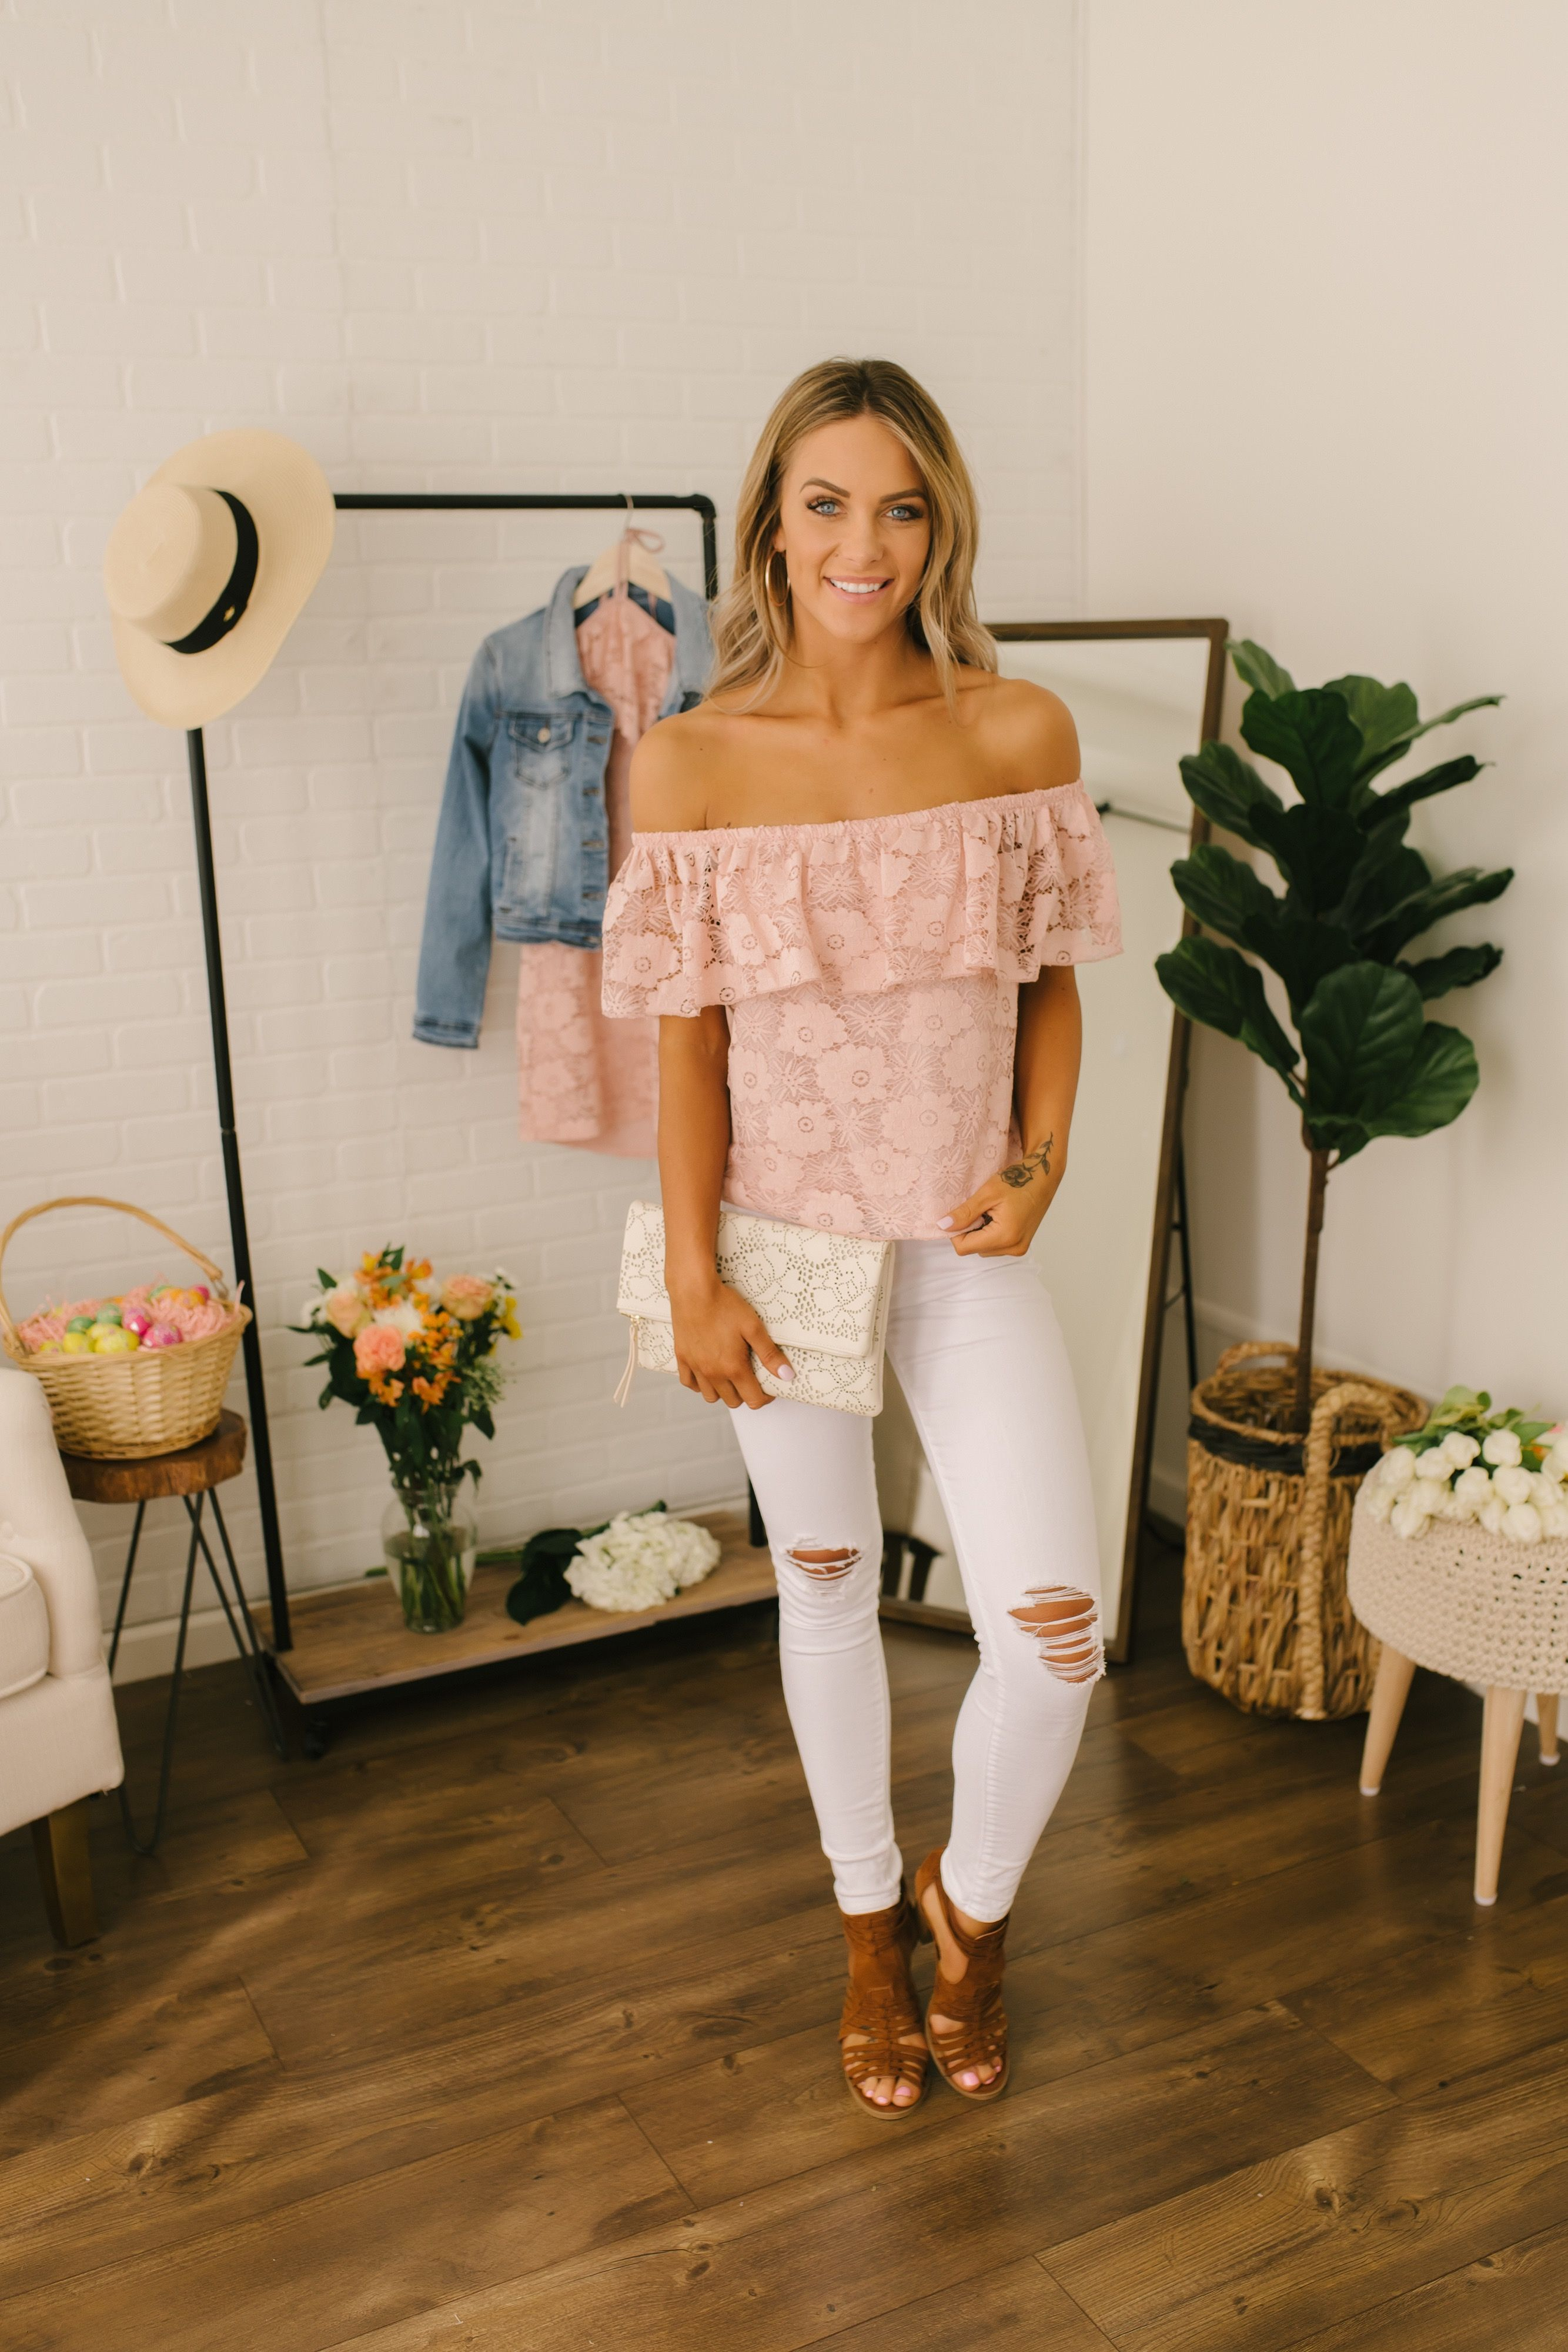 634bd21406e7cc This off the shoulder top features a ruffled overlay and comes in a floral  lace material. Pair with white skinny jeans and wedges for a classic and ...